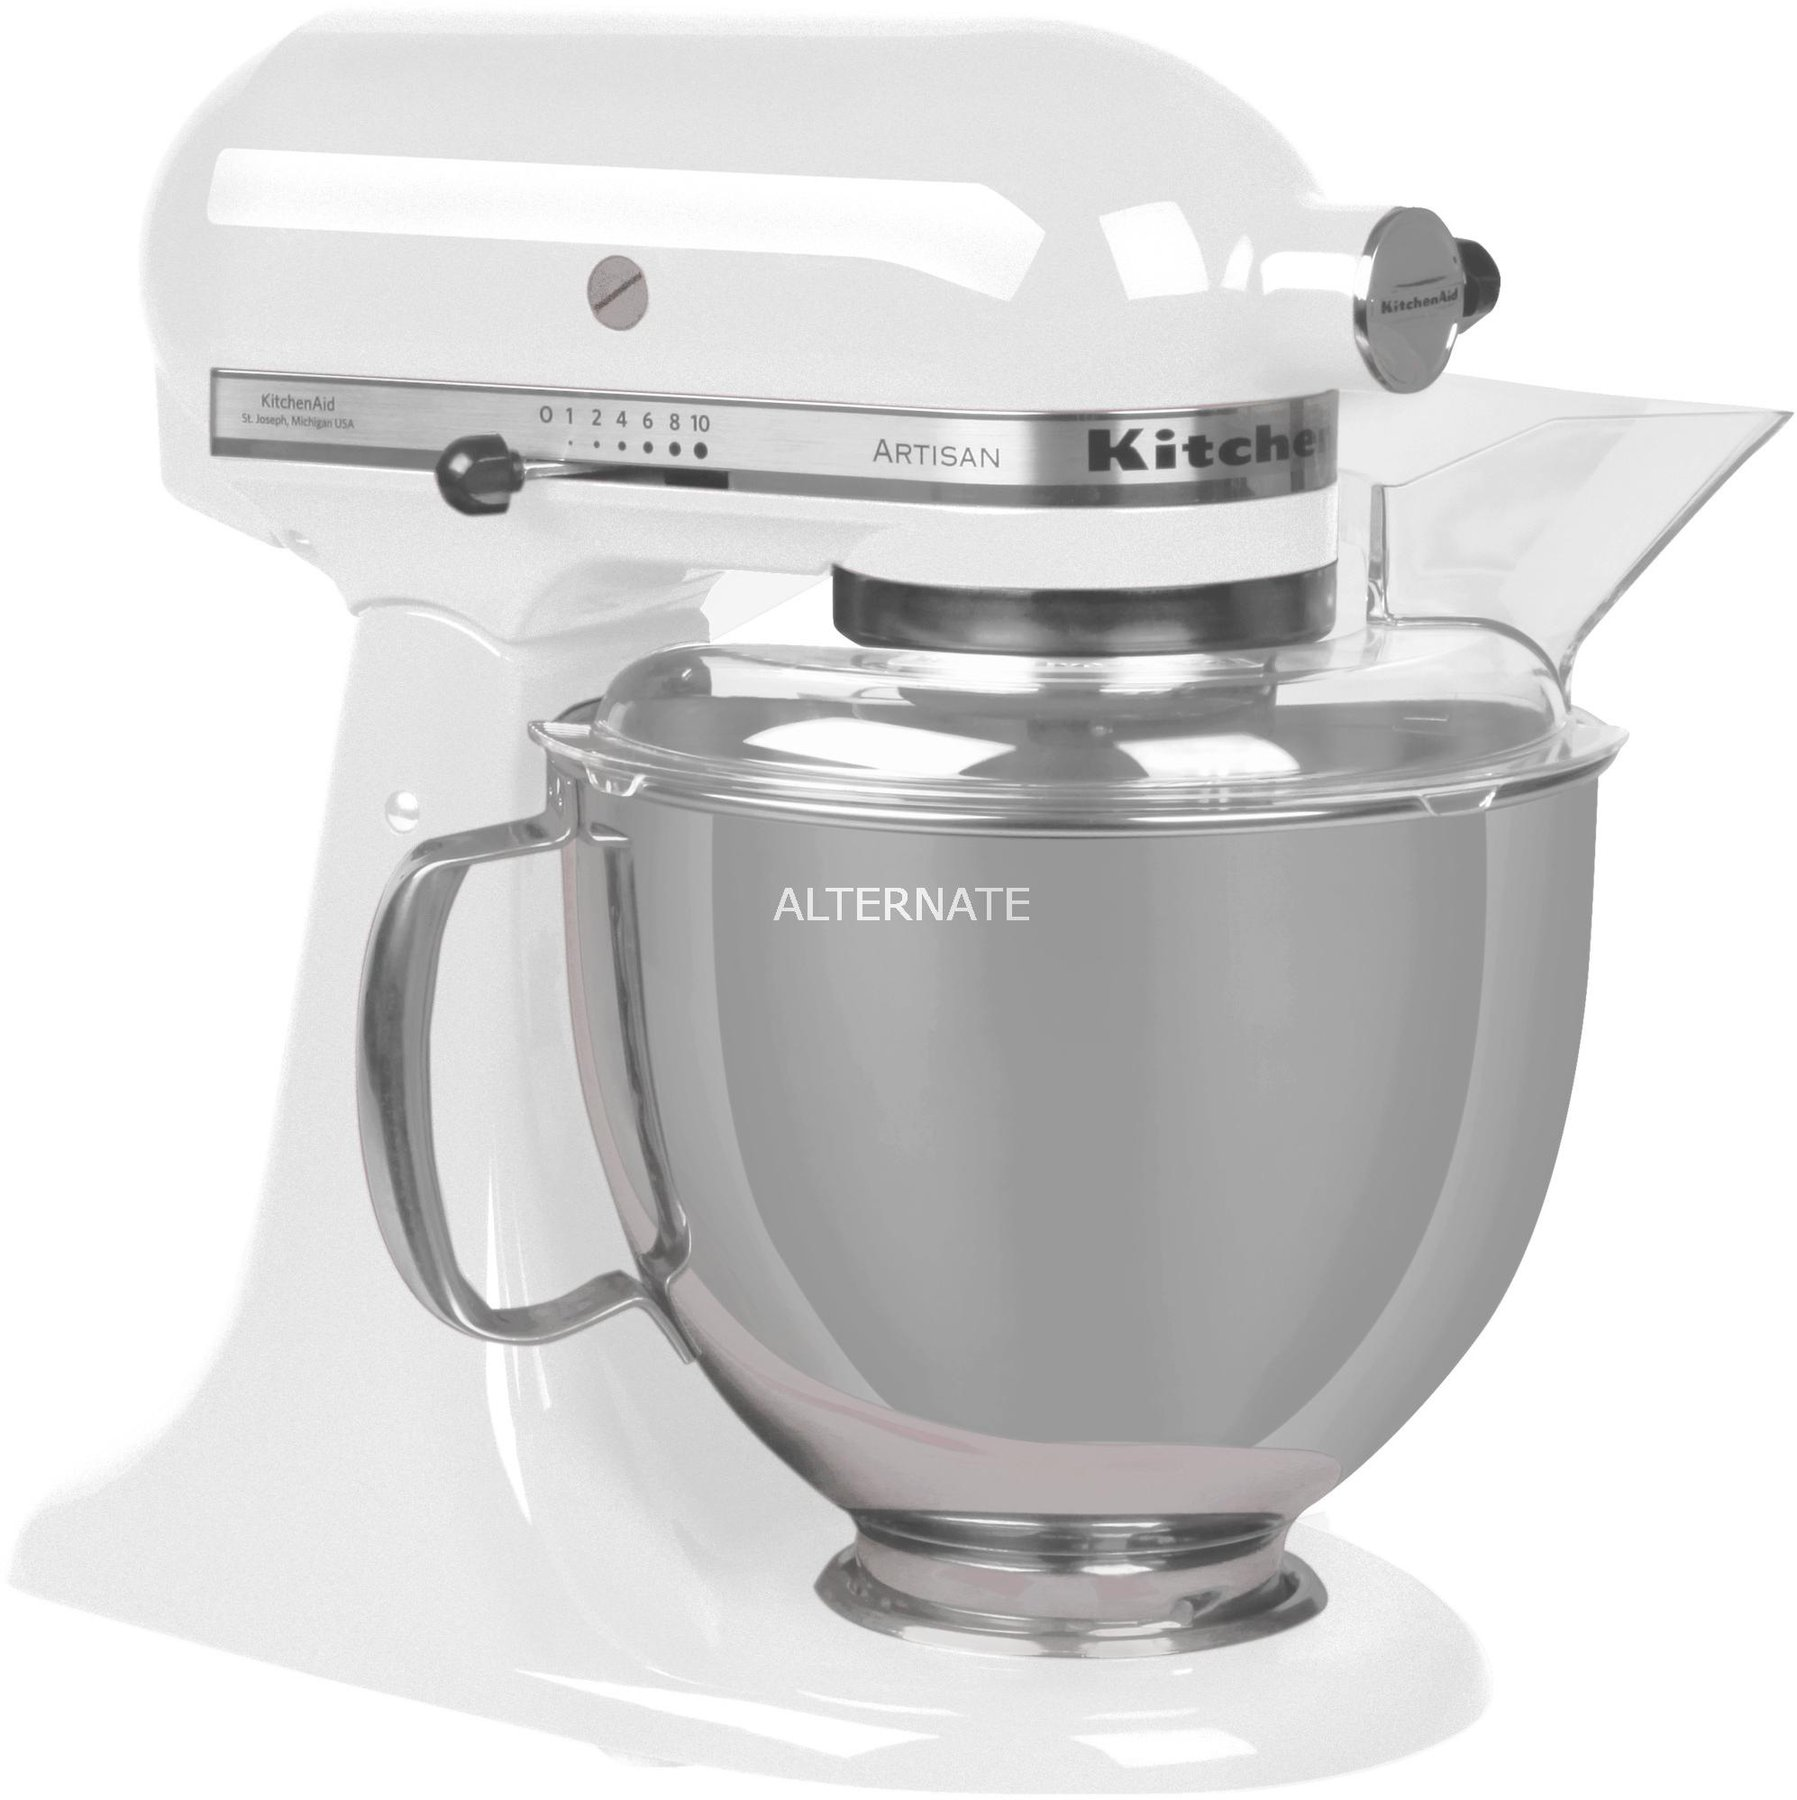 Kitchenaid Küchenmaschine Idealo Kitchenaid Artisan 5ksm175ps Ewh Weiß